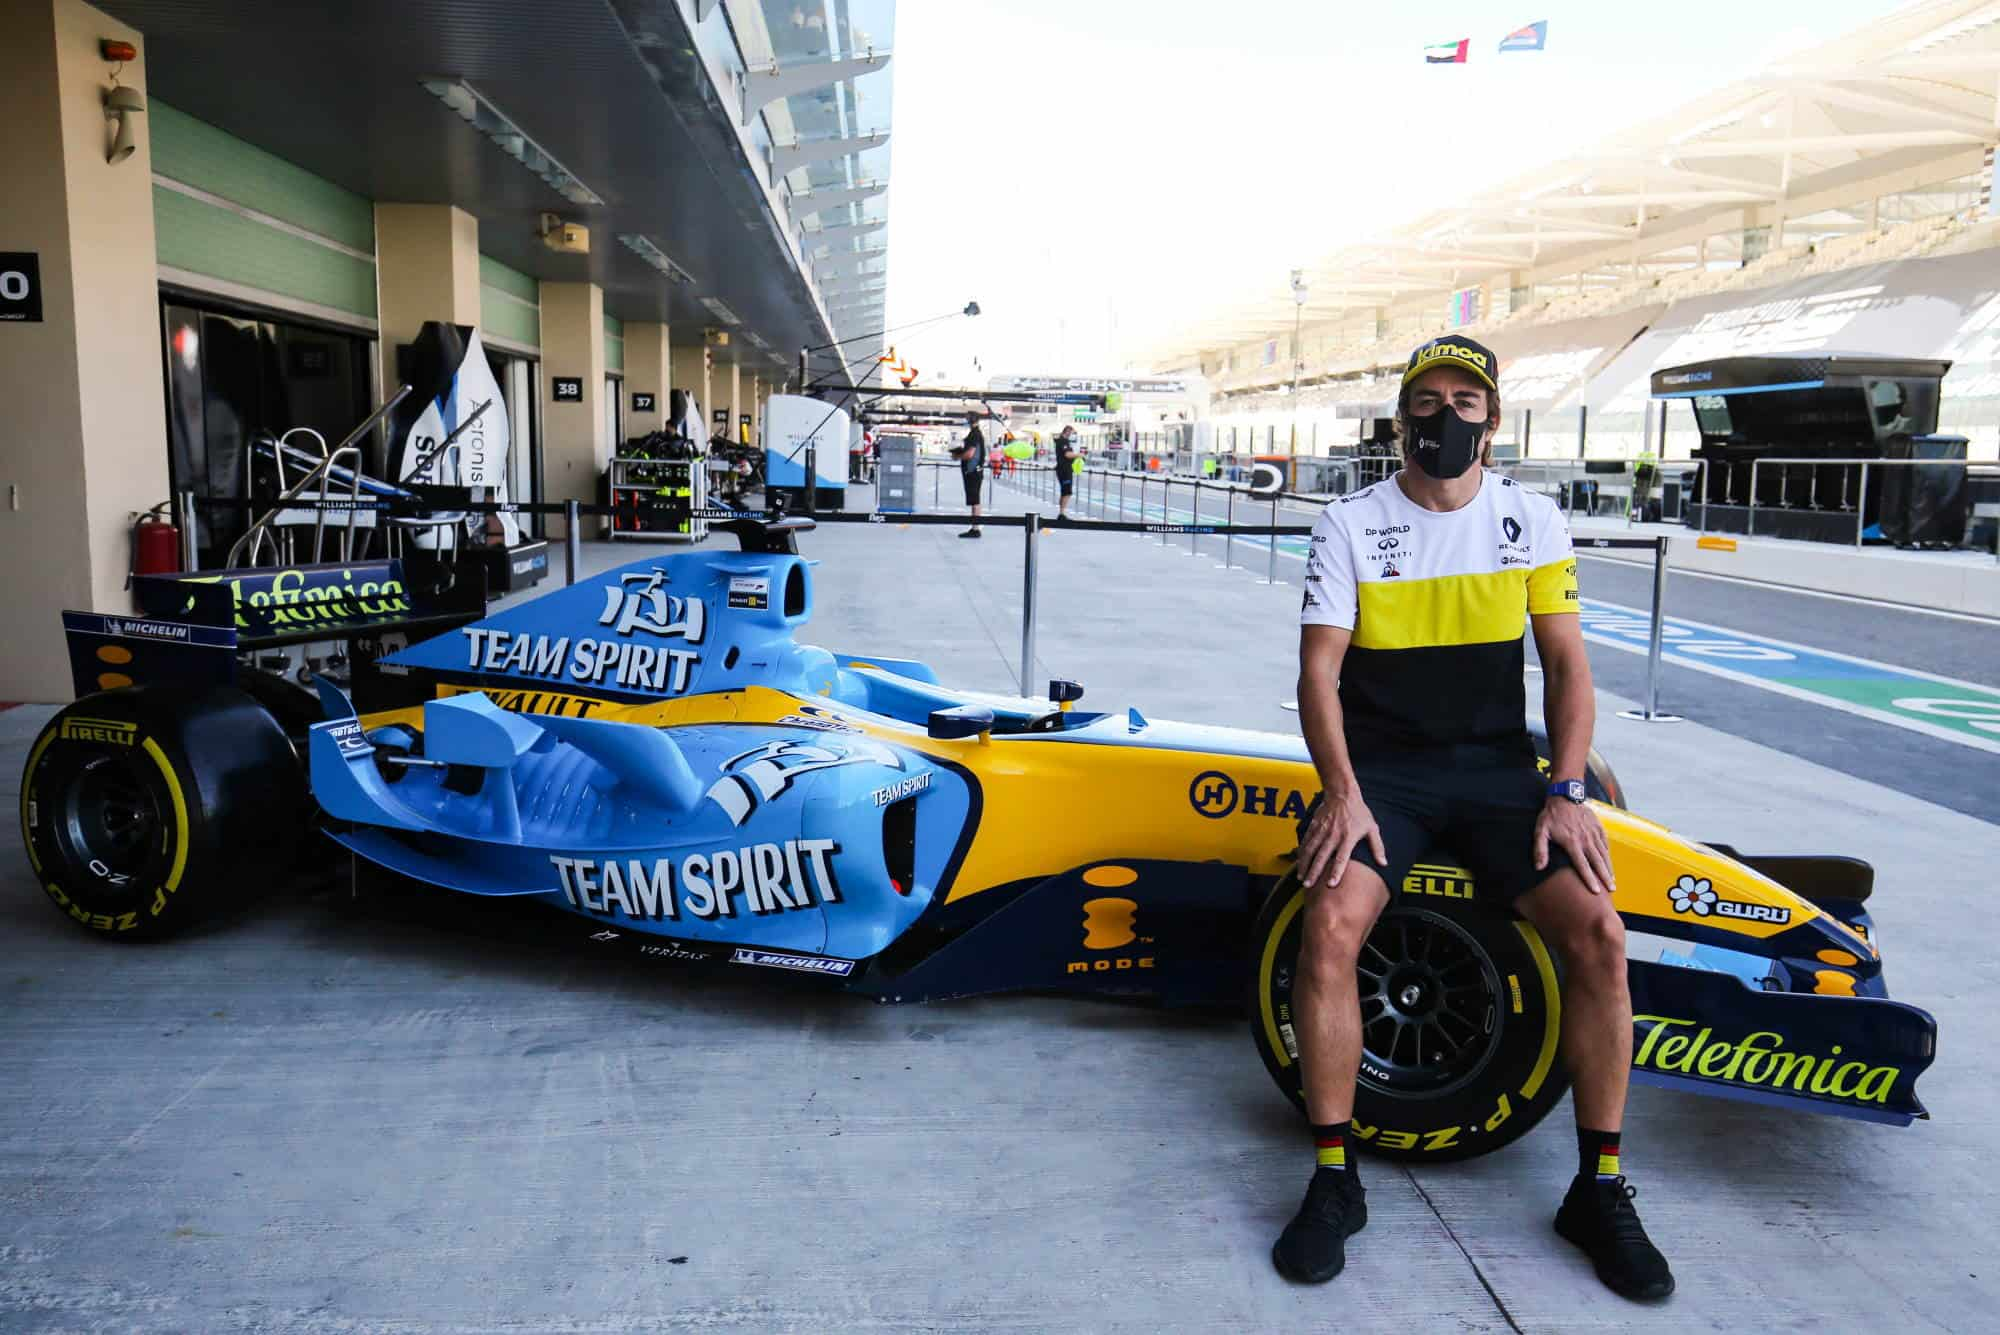 2020 Abu Dhabi GP Alonso Renault R25 demo run pitlane 2000 px Photo Renault